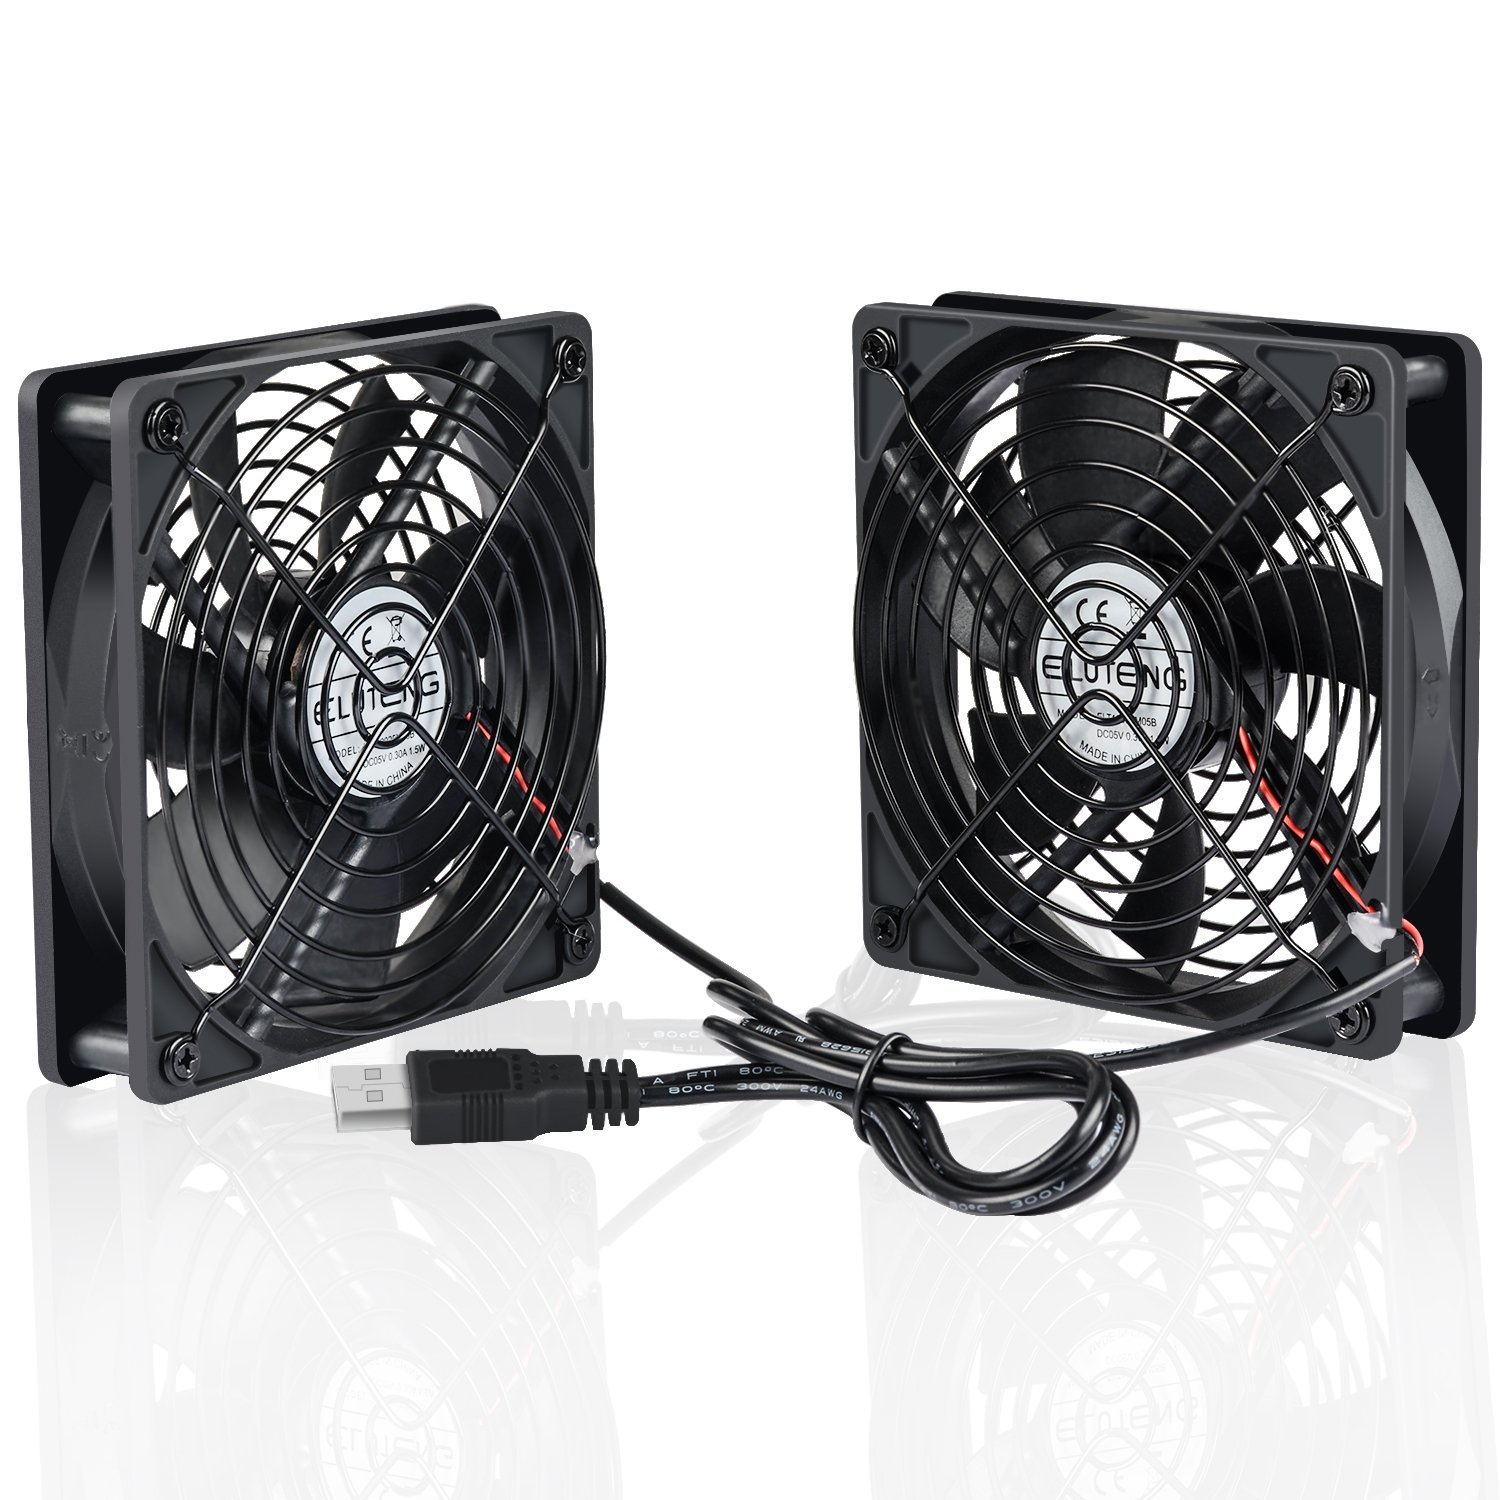 ELUTENG 120mm Fan 2 in 1 Dual USB Fan Computer Cooling Ventilator DC 5V for Laptop/Playstaion/Xbox One/Mini PC/Router/DVR Radiator Fan